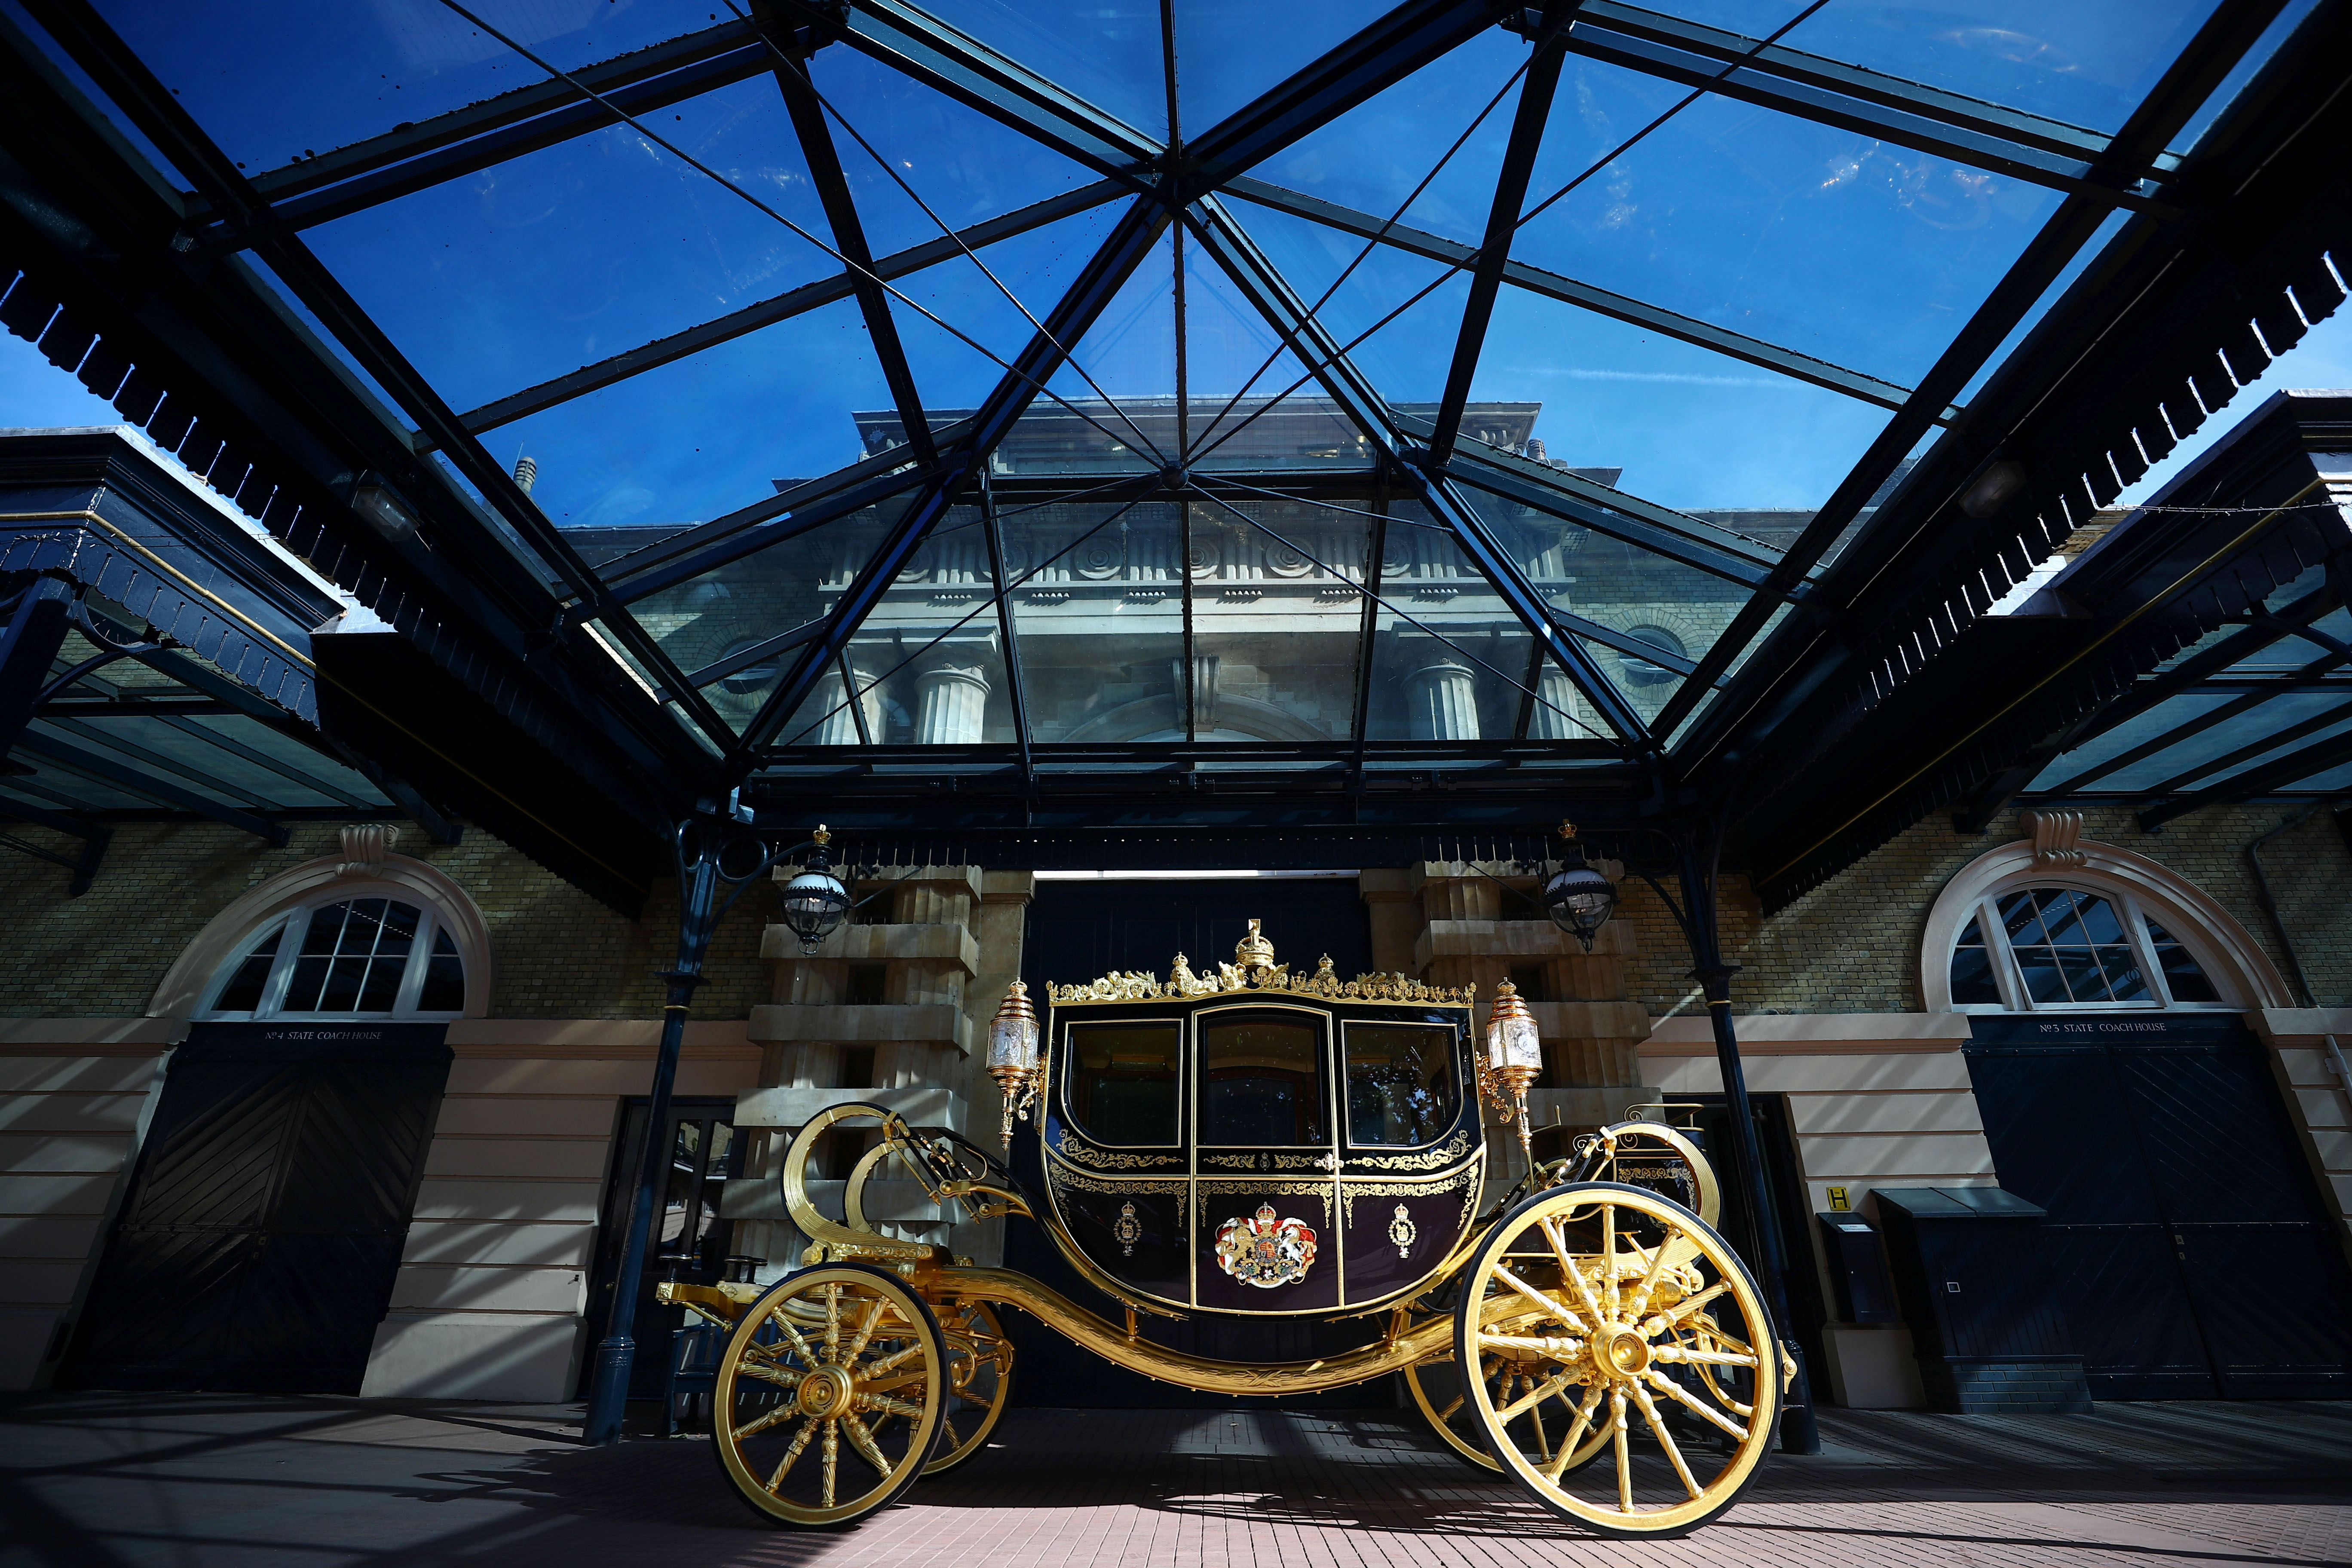 The Jubilee Carriage is seen in the courtyard of the Royal Mews at Buckingham Palace in London, Britain, September 21, 2021. REUTERS/Hannah McKay